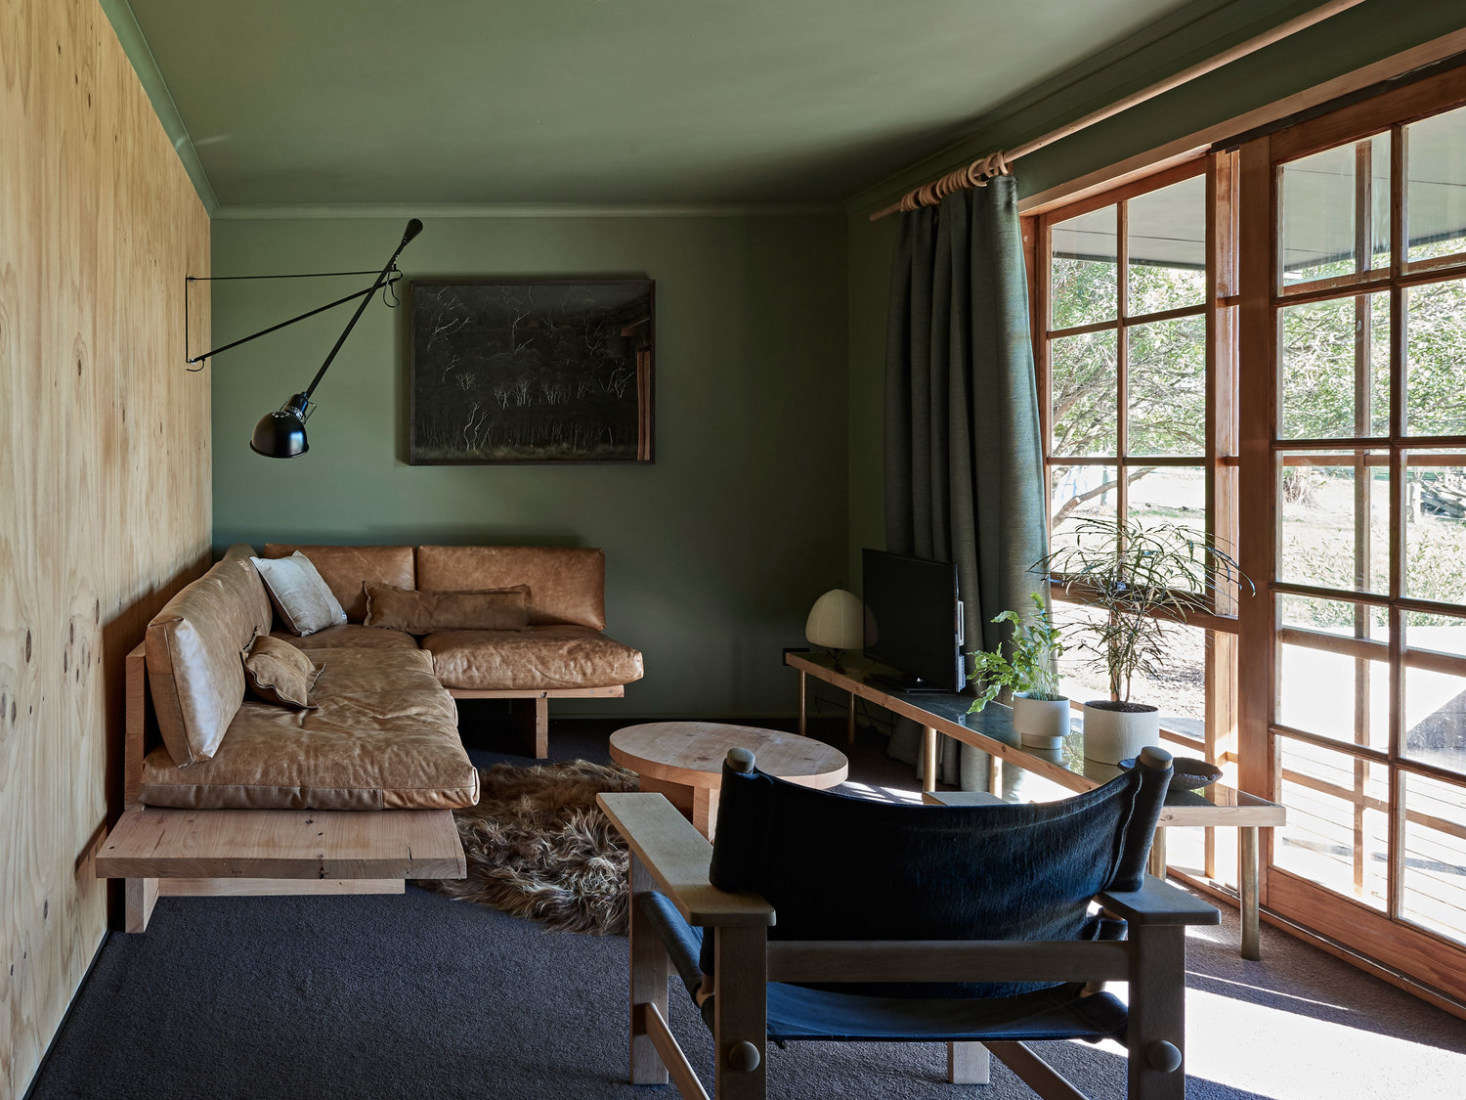 Plywood meets sage and worn leather in the living room. The cedar-framed French doors were introduced to make the most of the views. (&#8